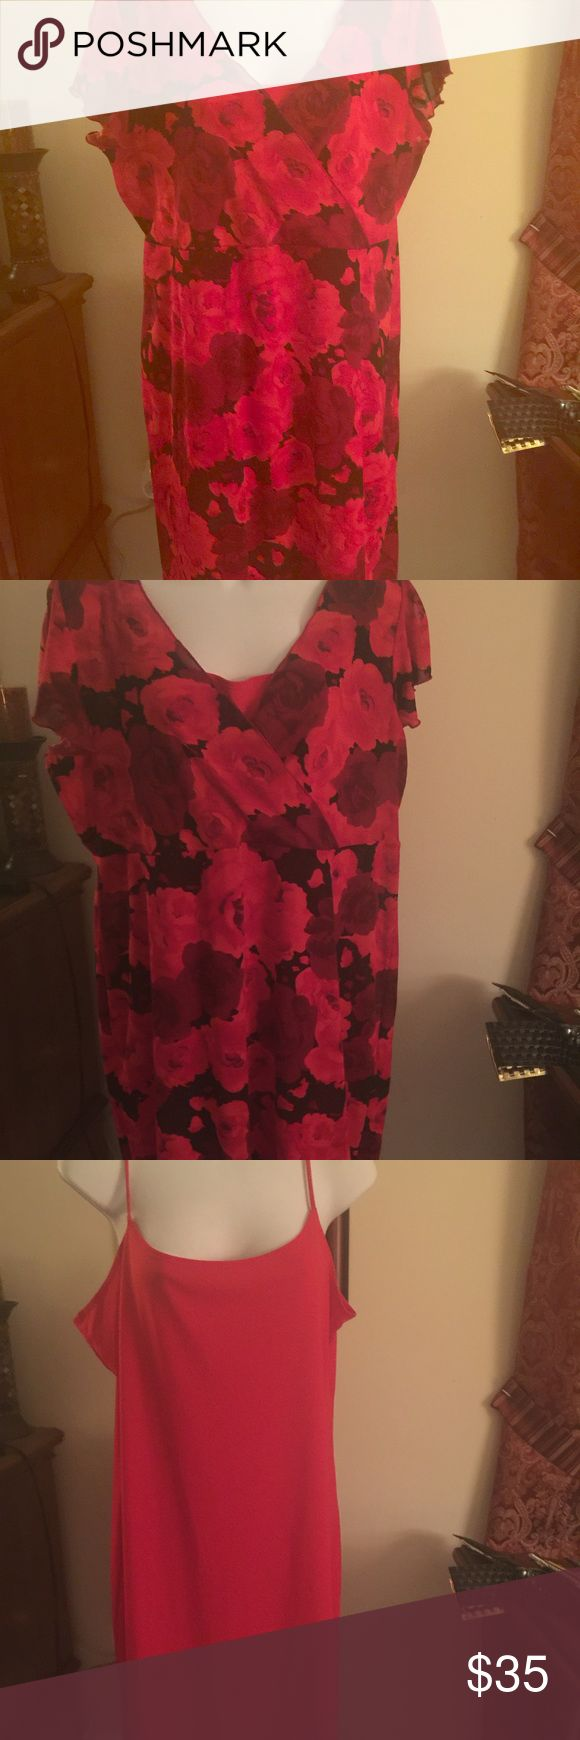 Two piece she's floral dress Sheer floral two piece dress with flutter sleeve.   The spaghetti strapped dress worn underneath can be worn as a dress by itself.   The dress is 100% polyester and is very flattering for the full figured woman Dresses